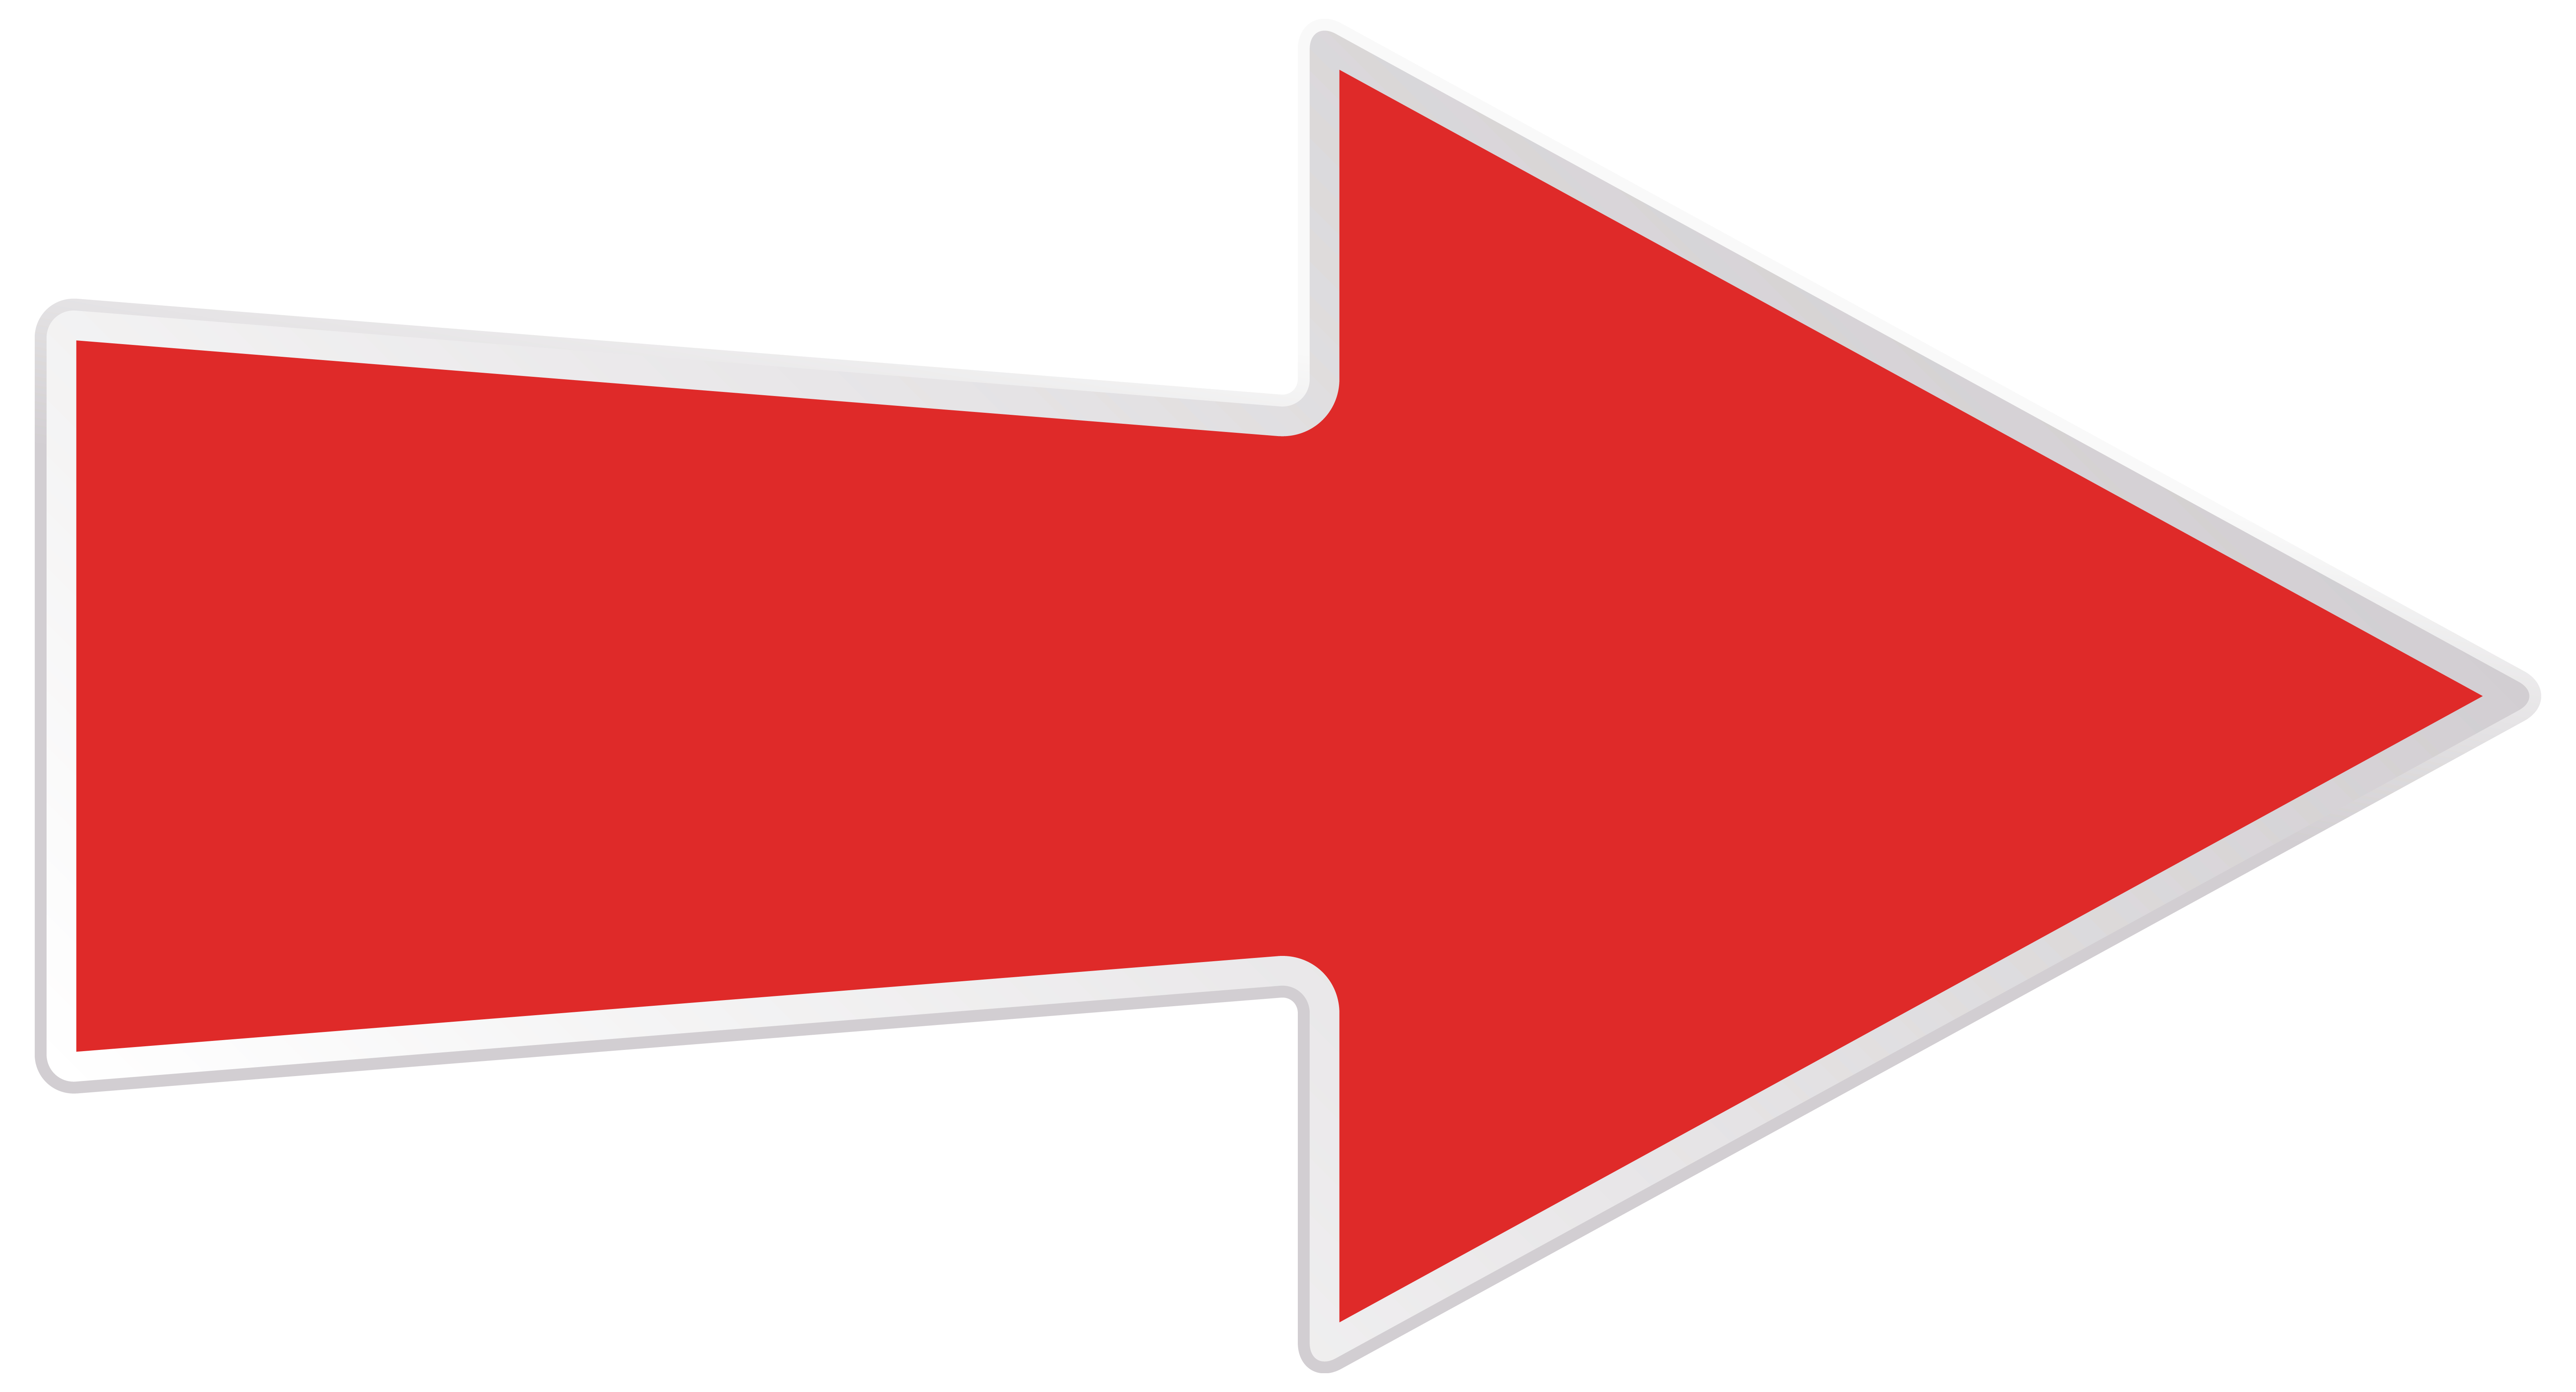 Red right arrow transparent. Arrows images png